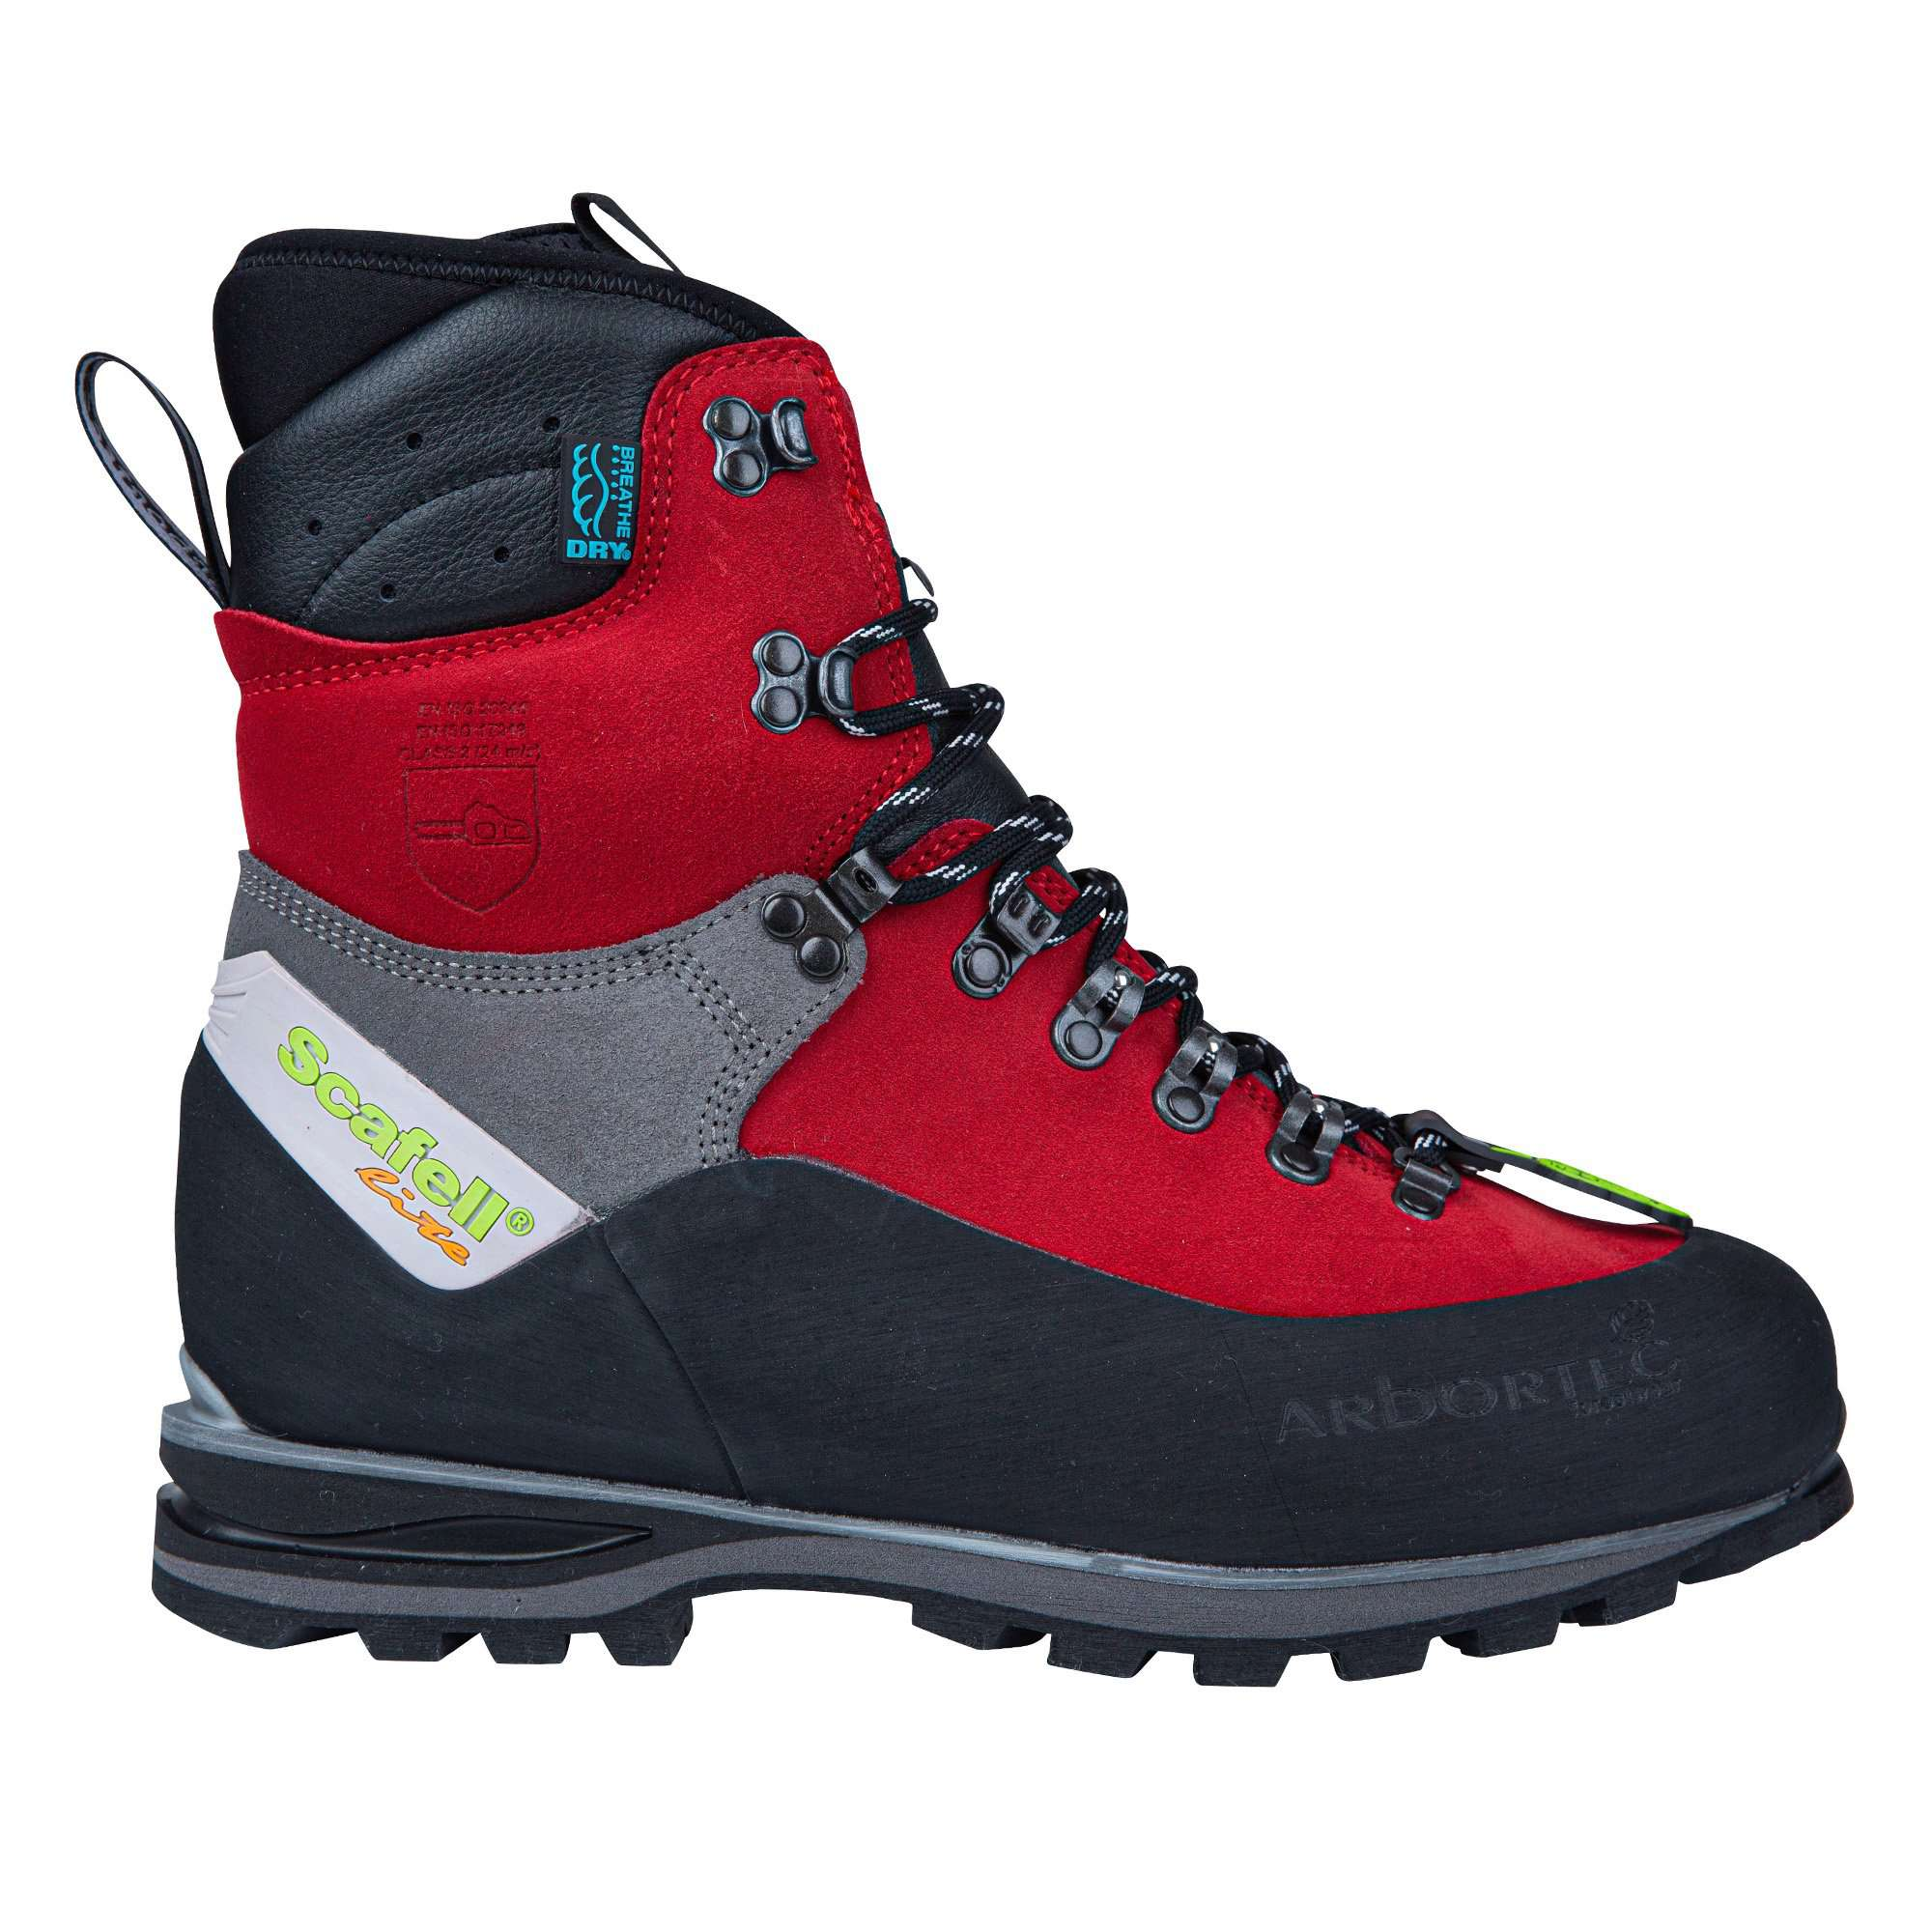 Scafell Lite Class 2 Chainsaw Boot - Red - AT33400